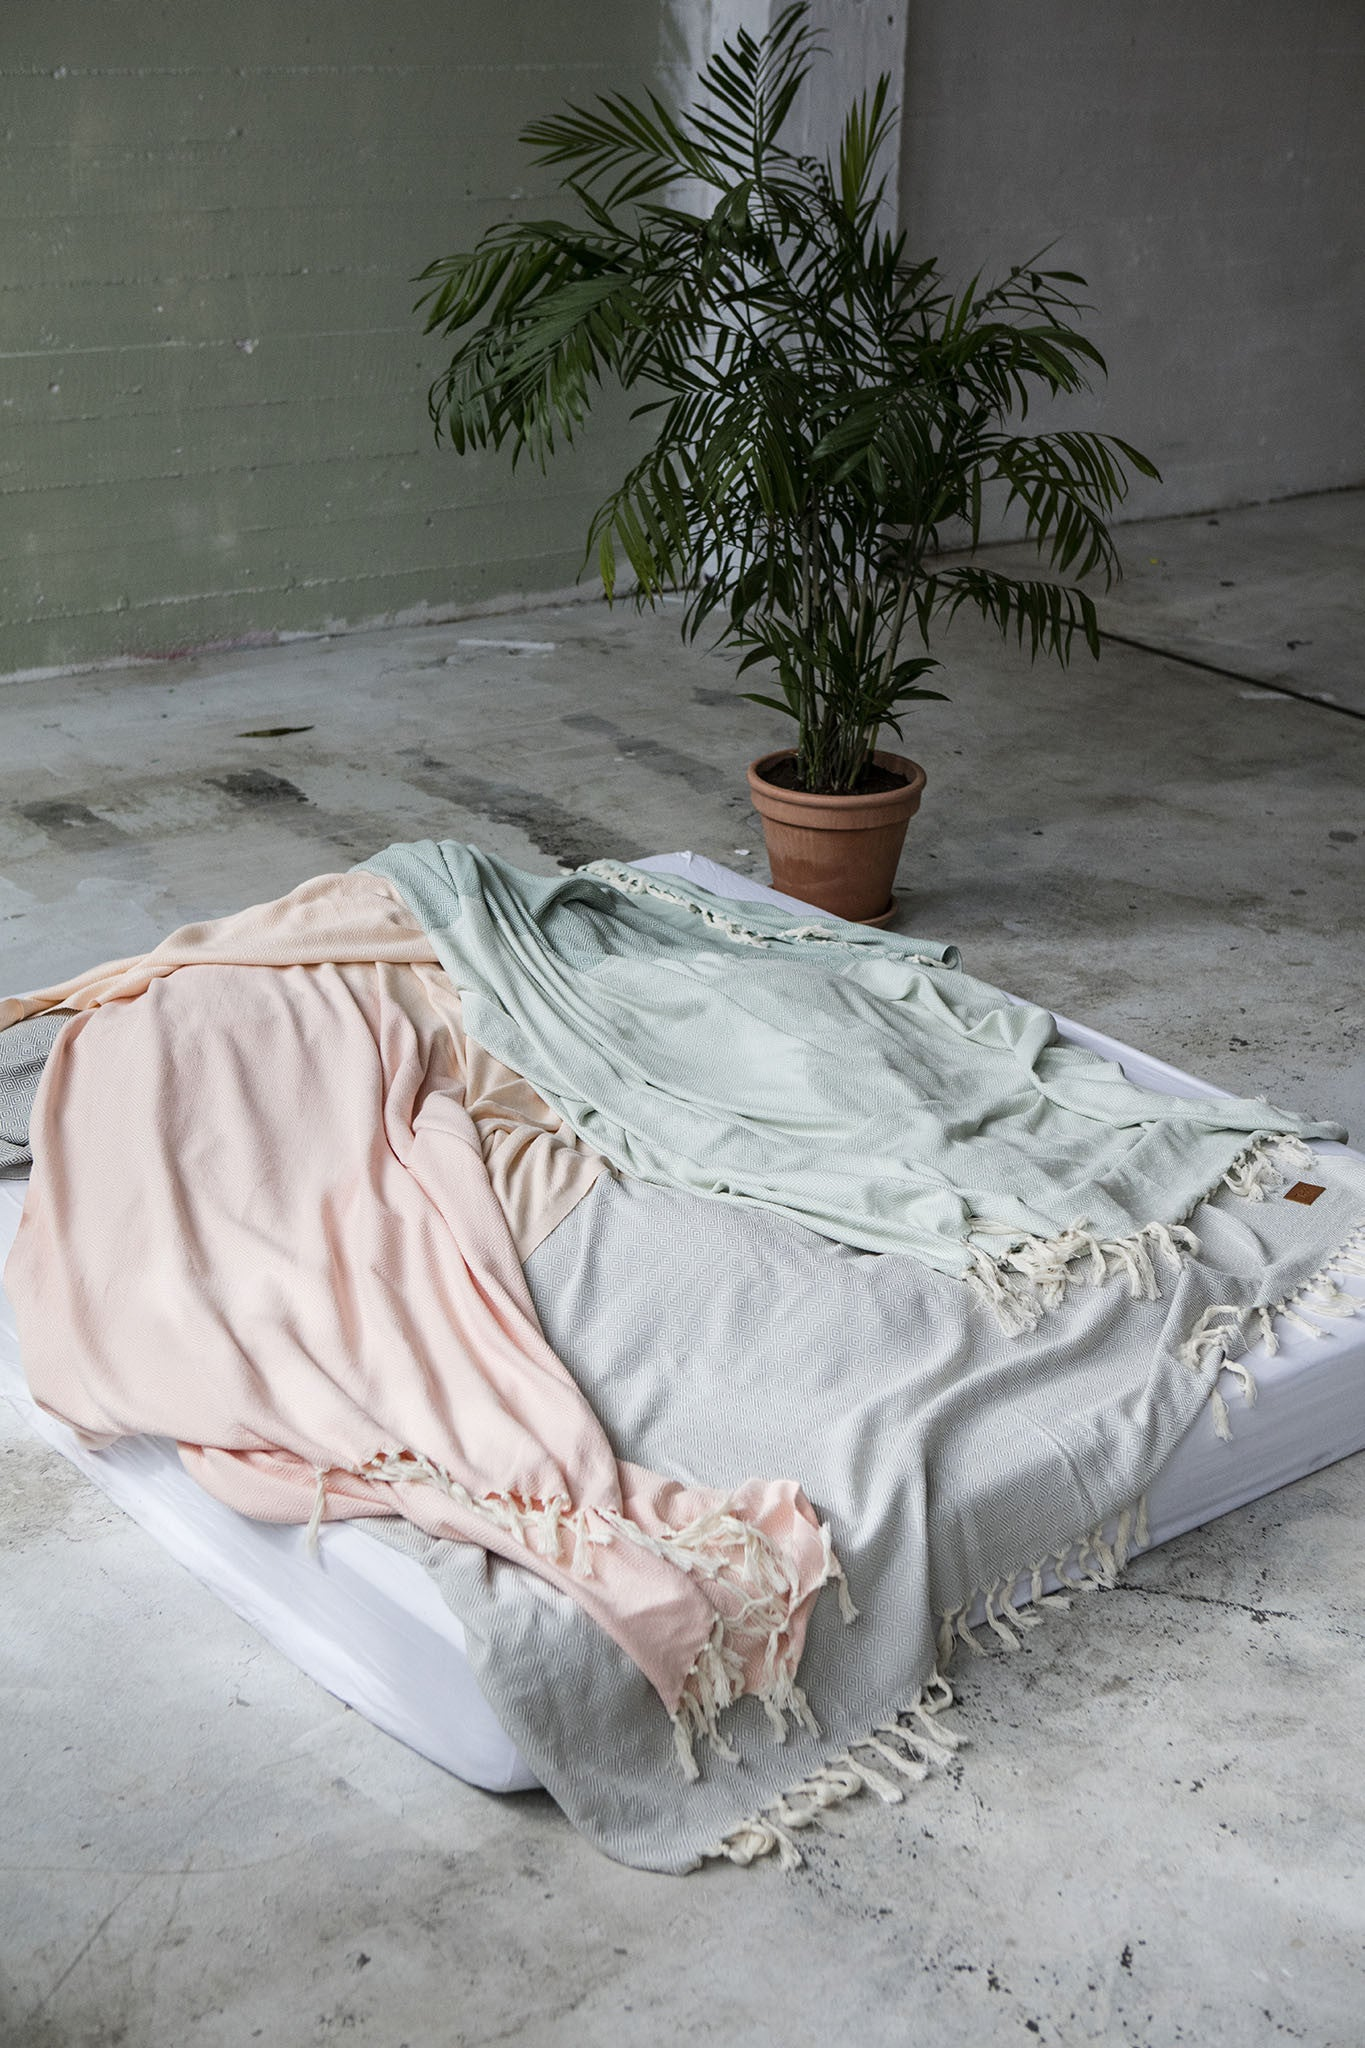 Soft and lightweight blanket. Ideal as a sofa blanket, a bed cover, a beach blanket, a picnic blanket and a table cloth. Aesthetically pleasing, takes up little space. STANDARD 100 by OEKO-TEX®, eco-friendly certification. 100% quality cotton